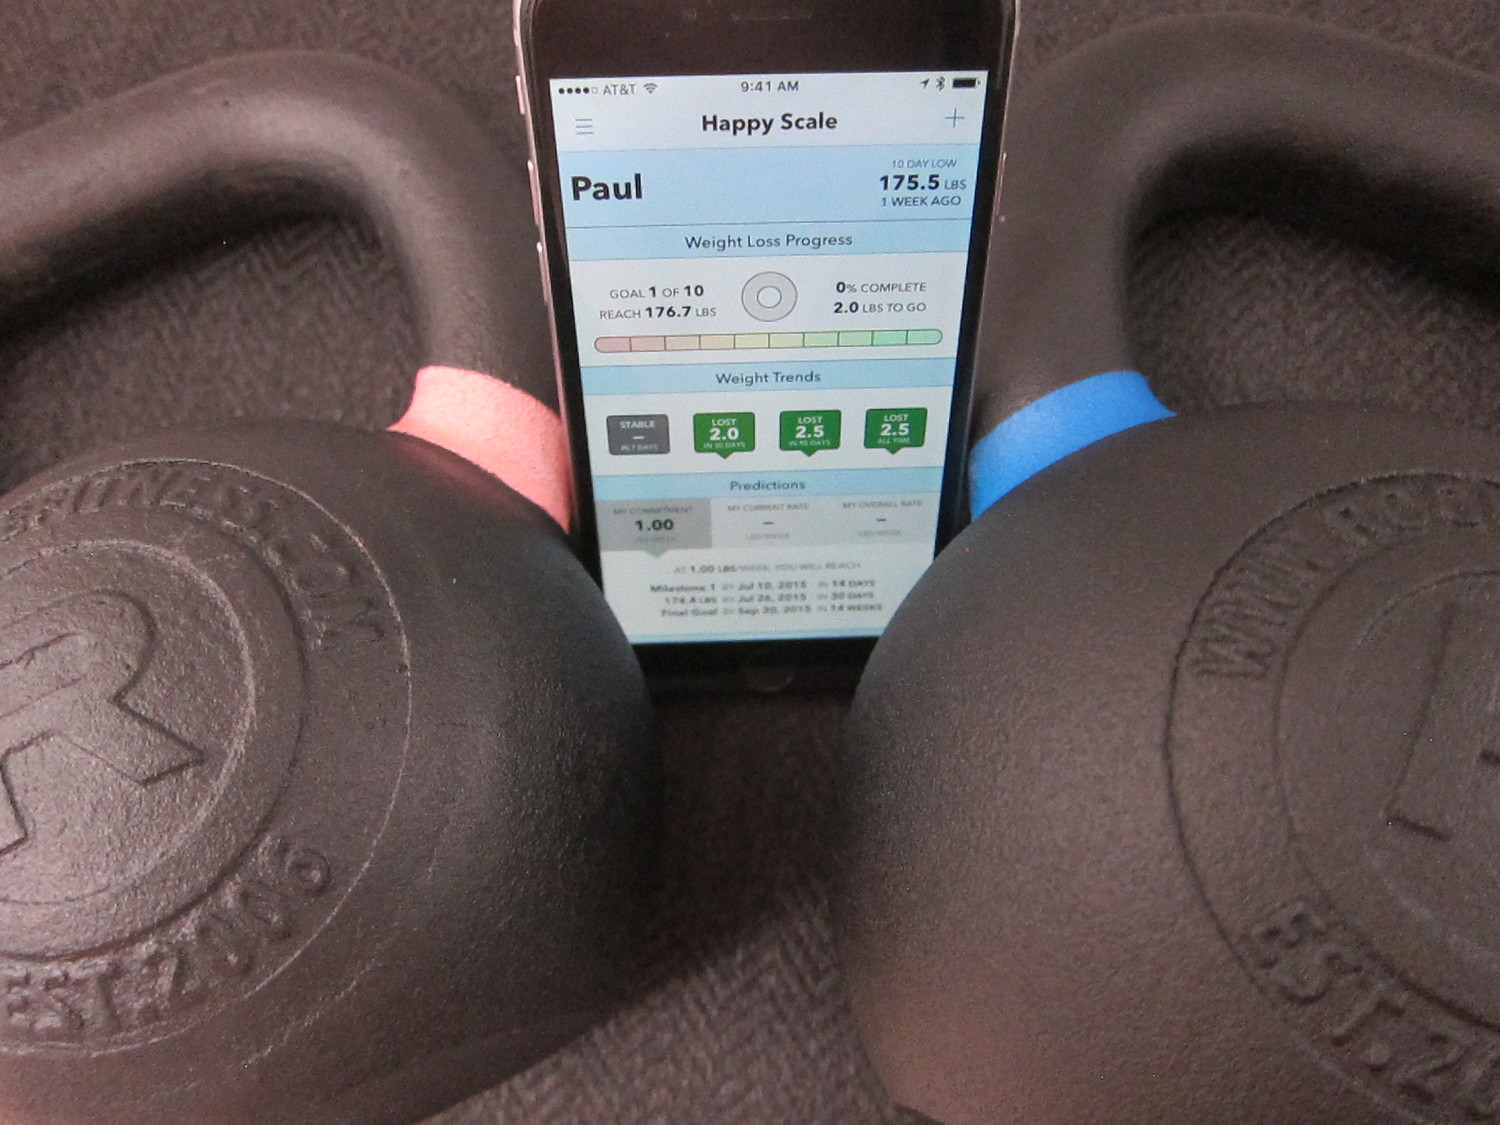 Happy Scale: The only weight tracker on the App store worth downloading is also quite excellent and motivating